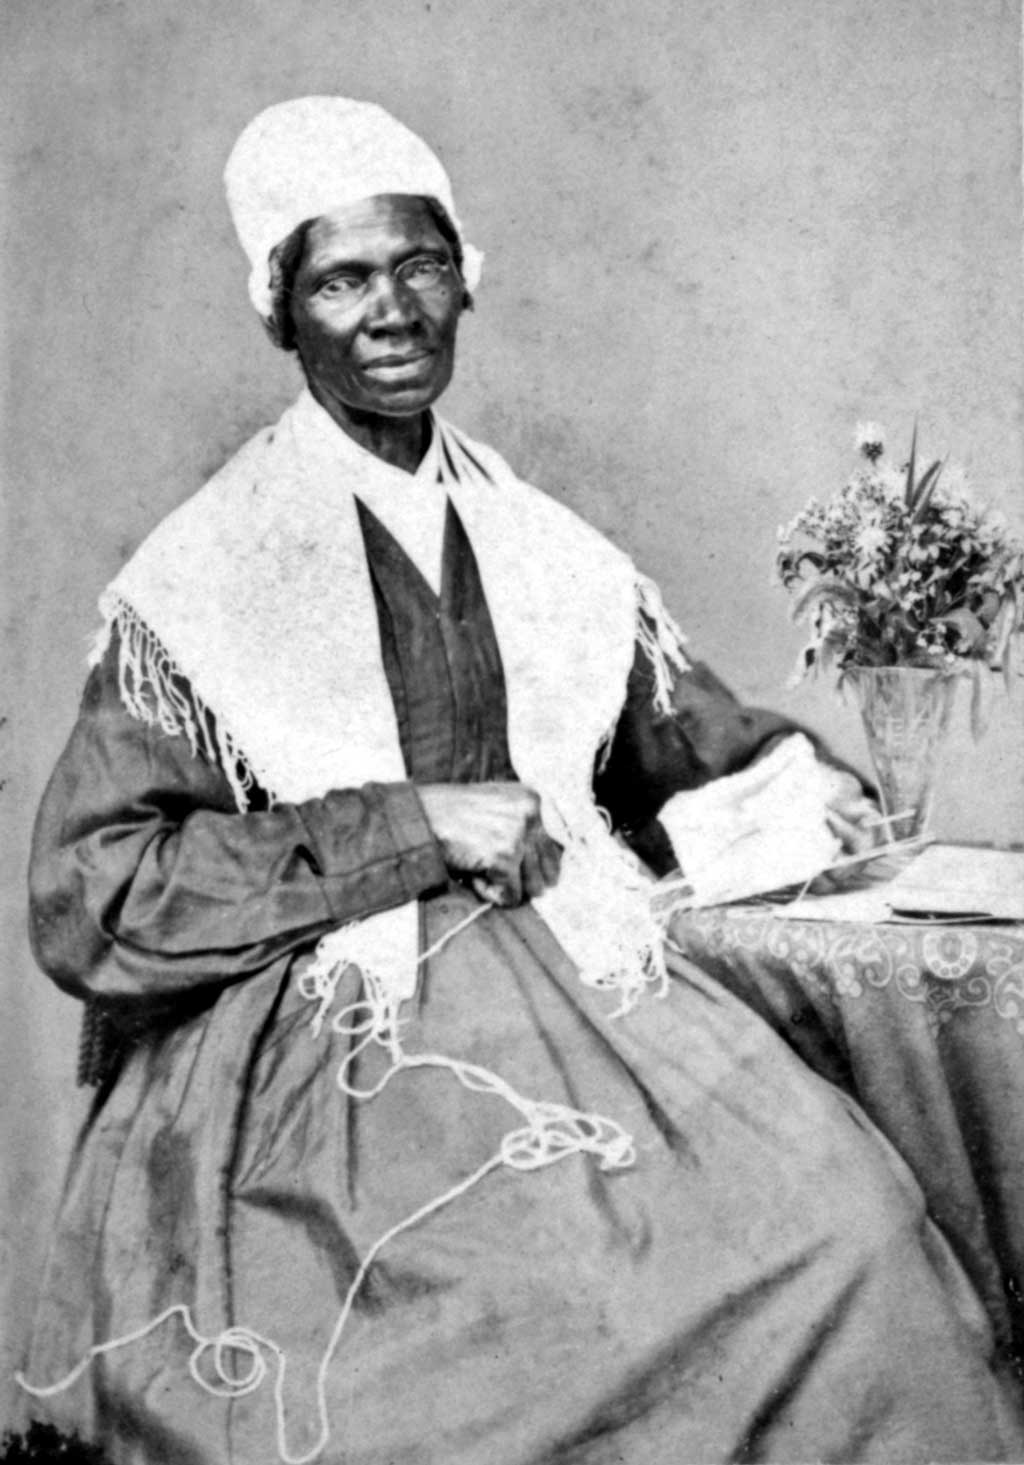 Photograph of Sojourner Truth in 1864